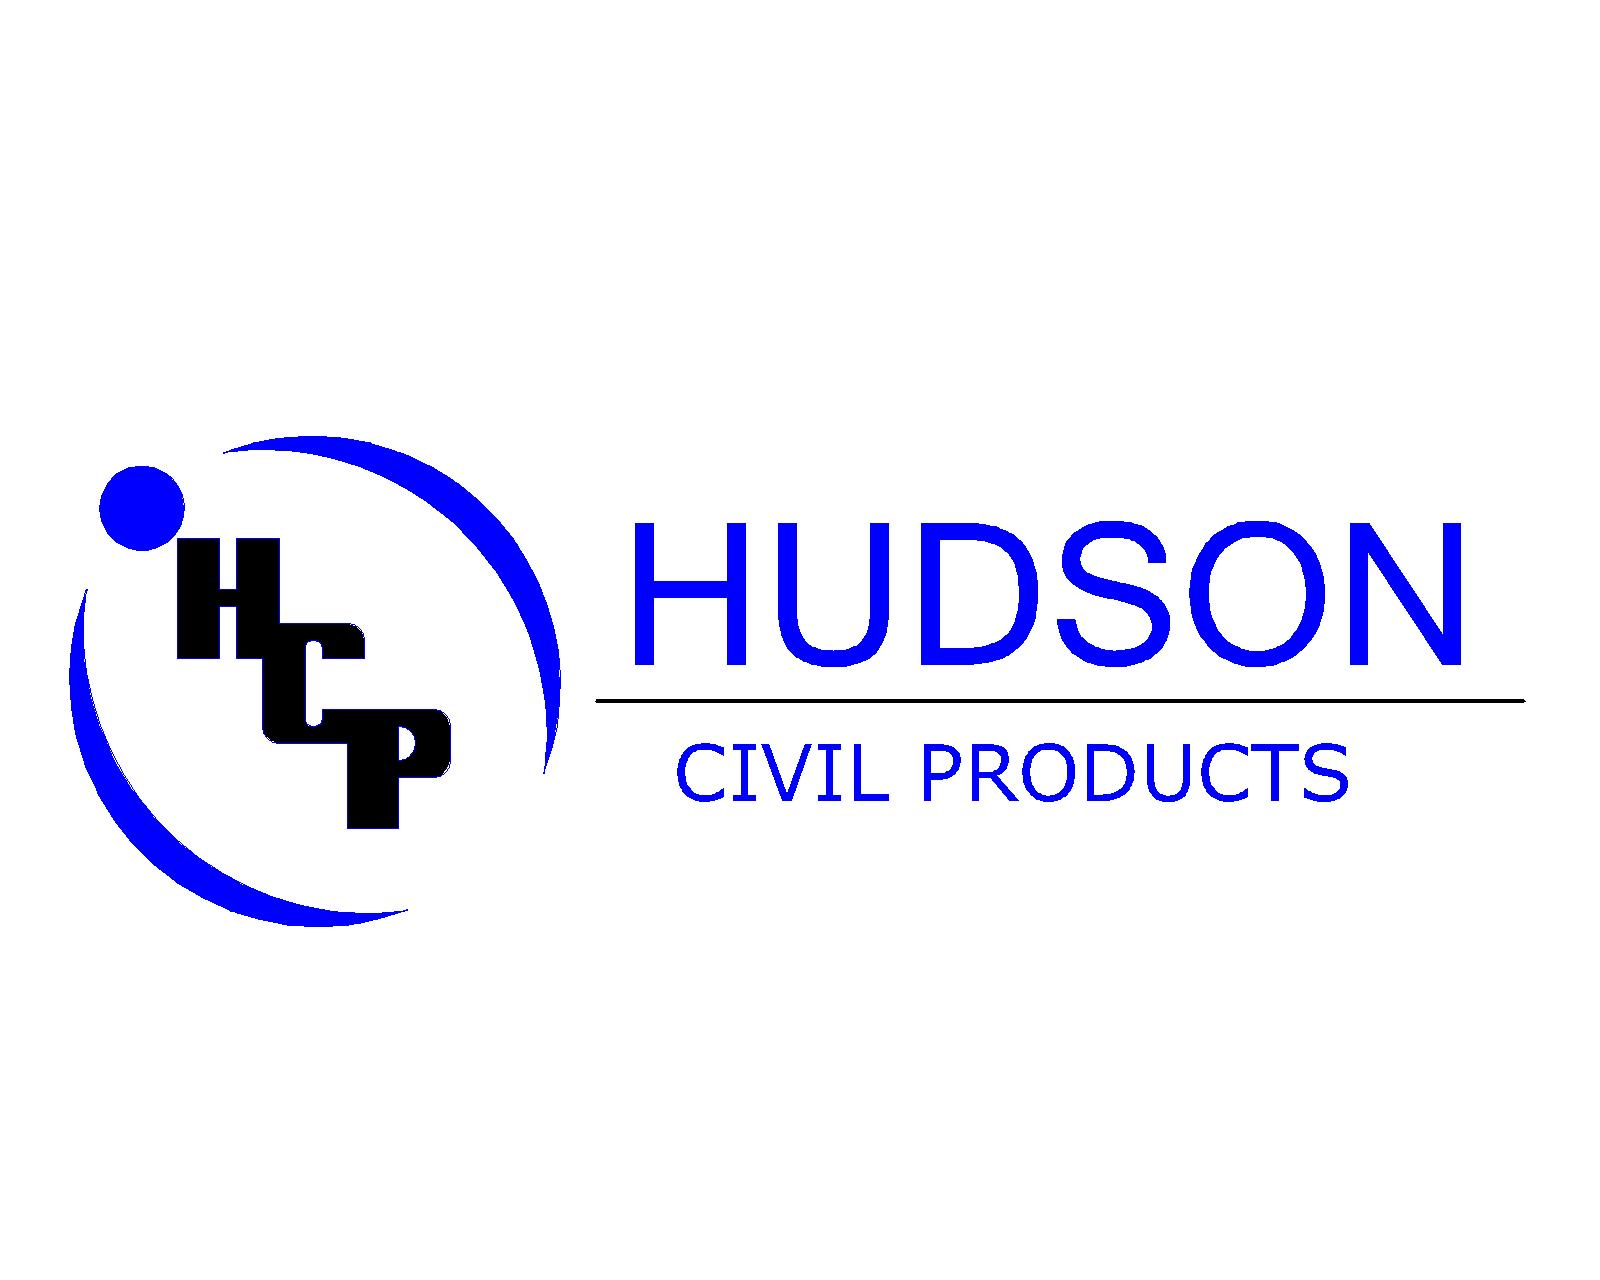 Hudson Civil Products